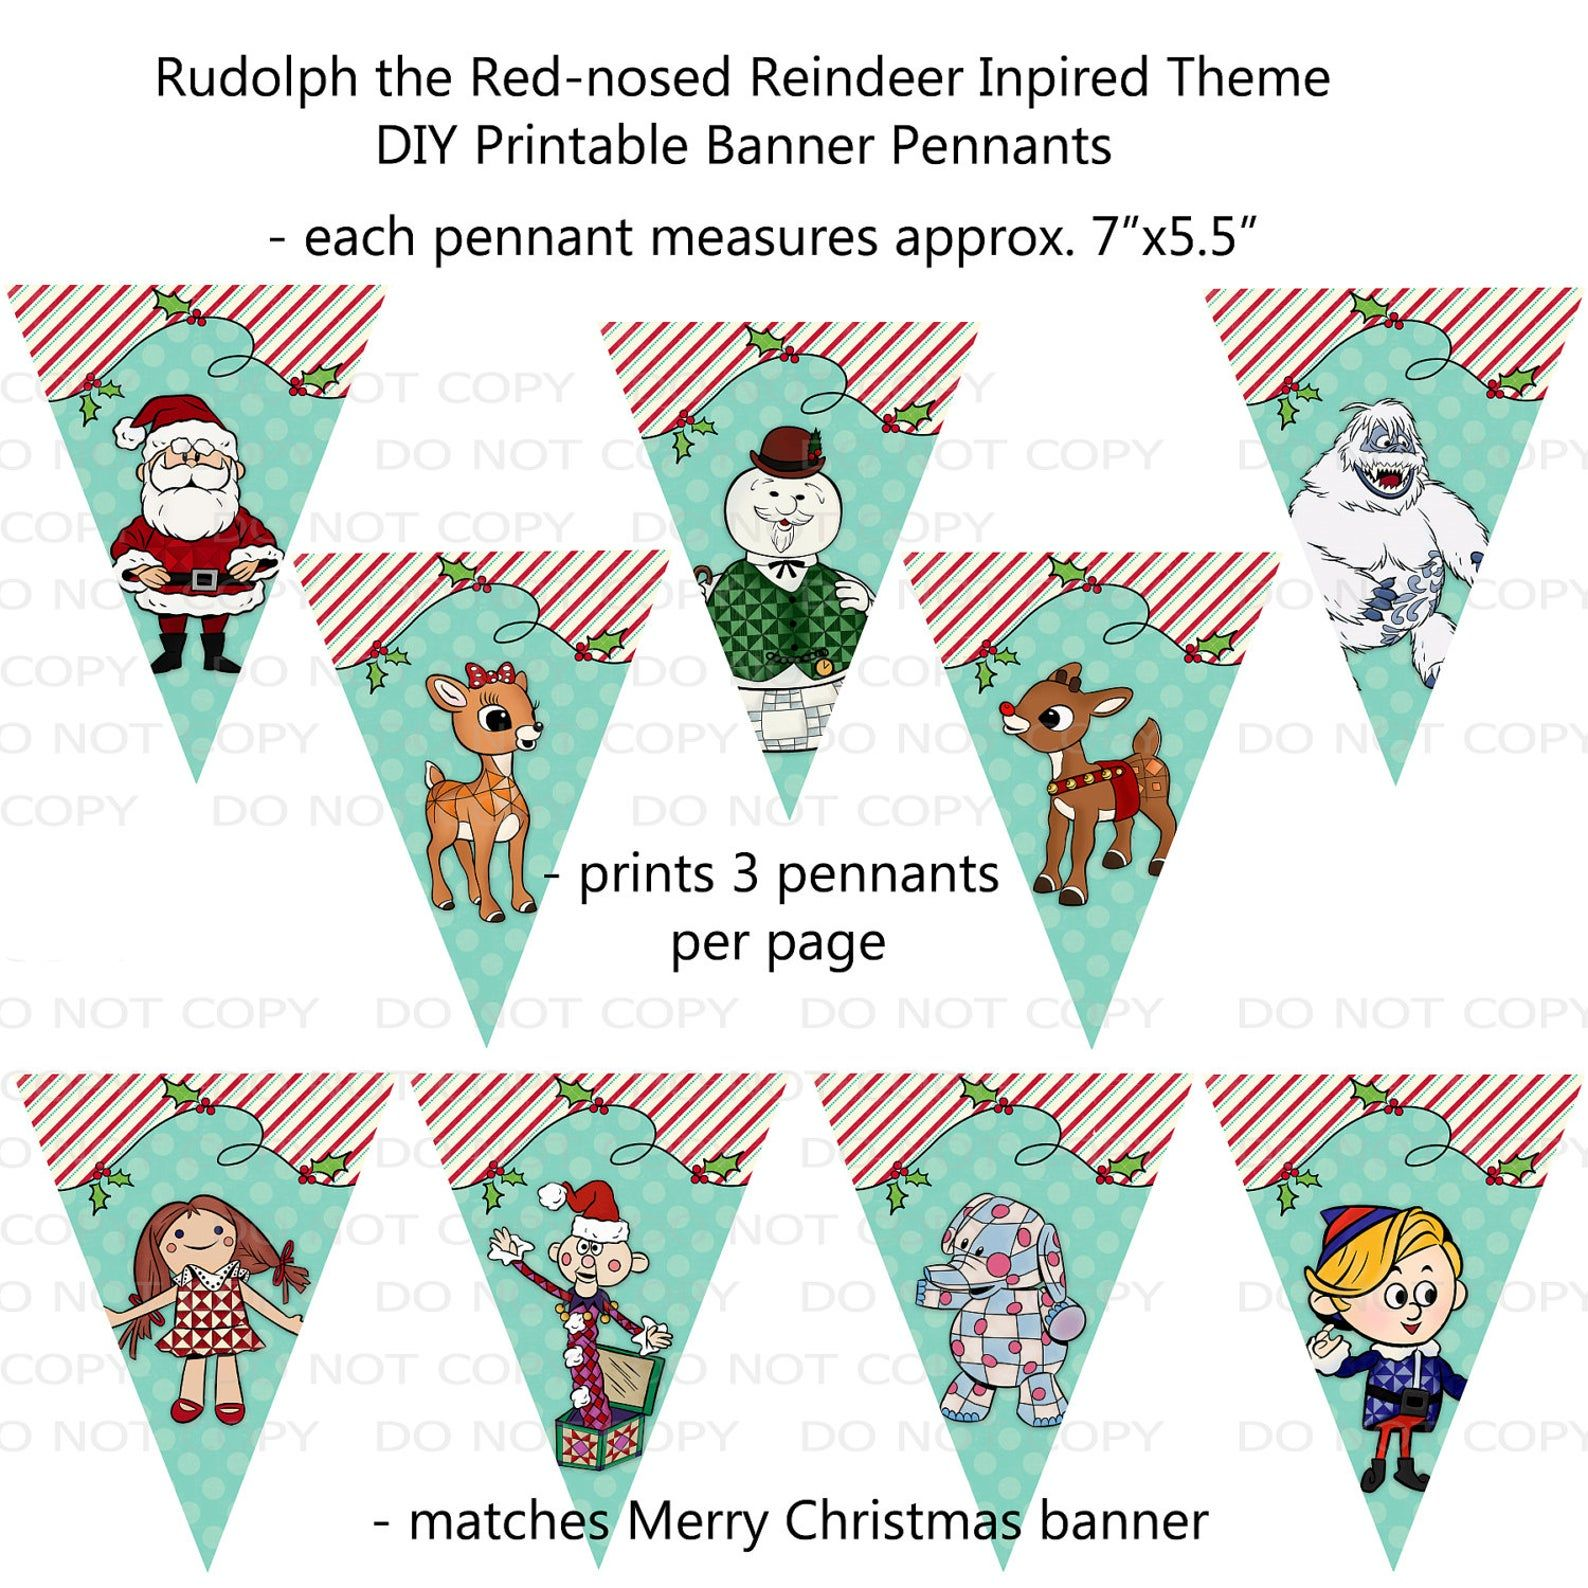 Rudolph Christmas 2020 Banner Printable DIY Rudolph Movie Inspired Party Banner Pennants | Etsy